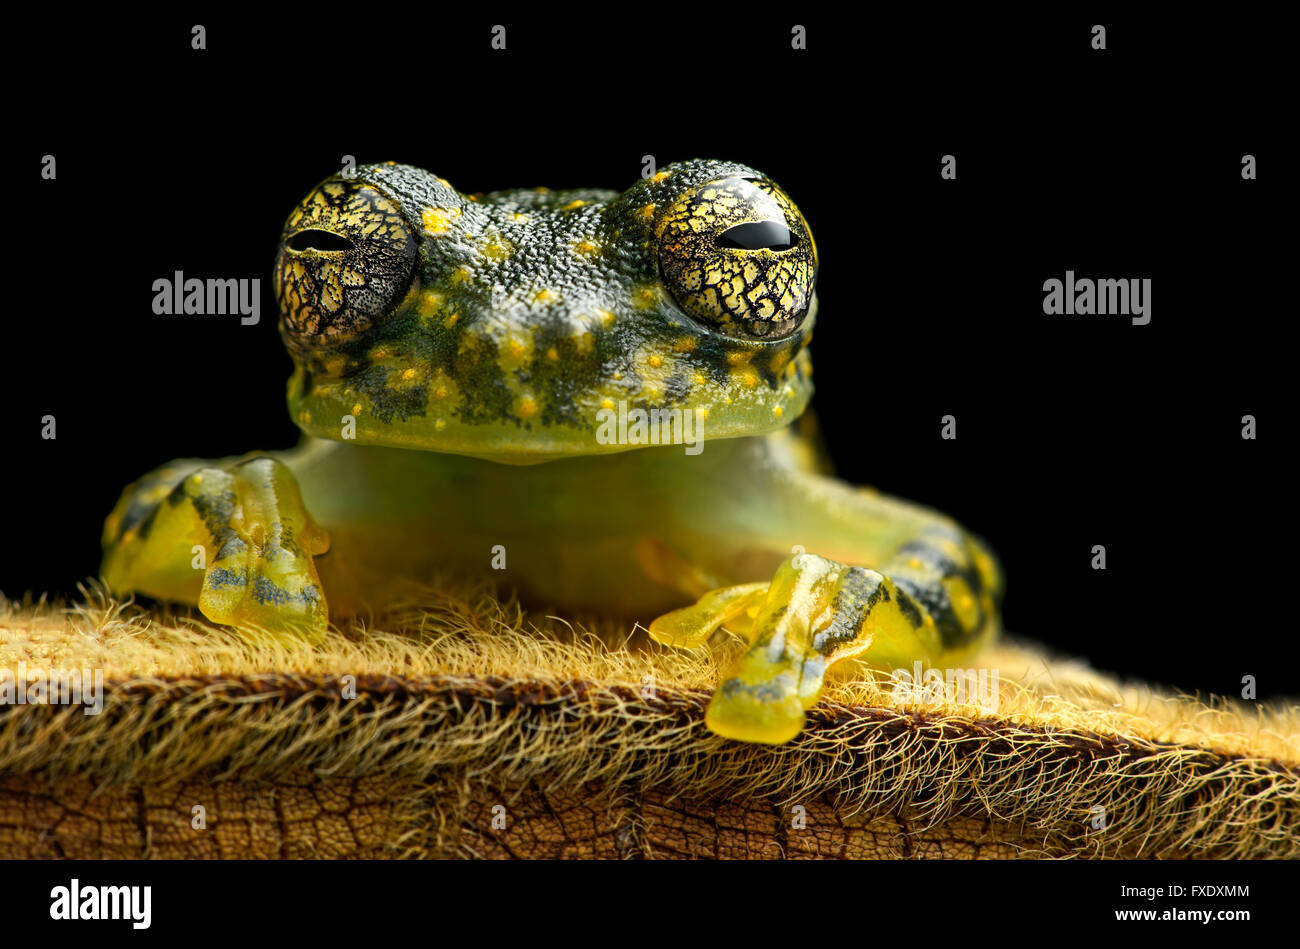 White-spotted Cochran Frog (Sachatamia albamoculata) sitting on hairy leaf, Choco rainforest, Canande River Nature - Stock Image